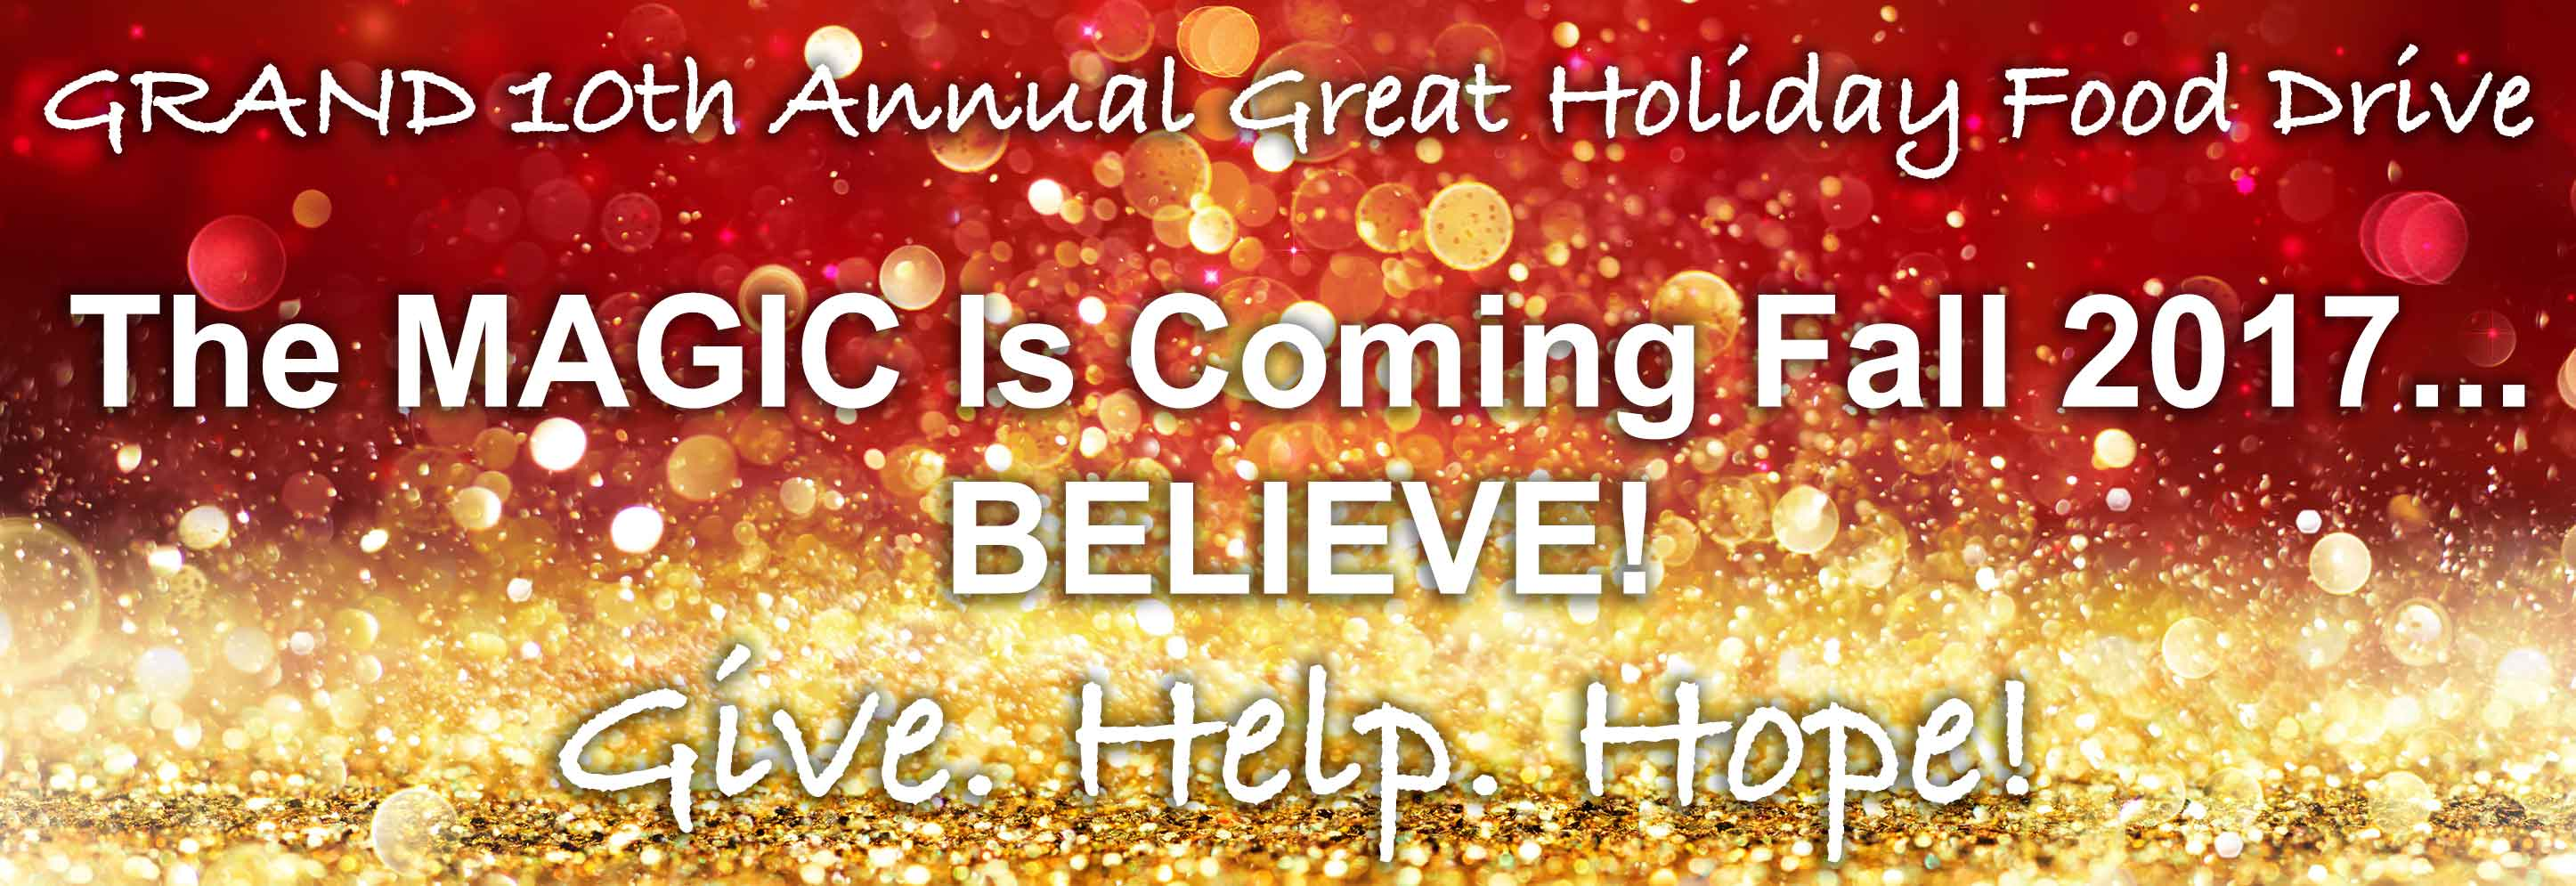 10th Annual Great Holiday Food Drive - A Magical Event Is Coming!